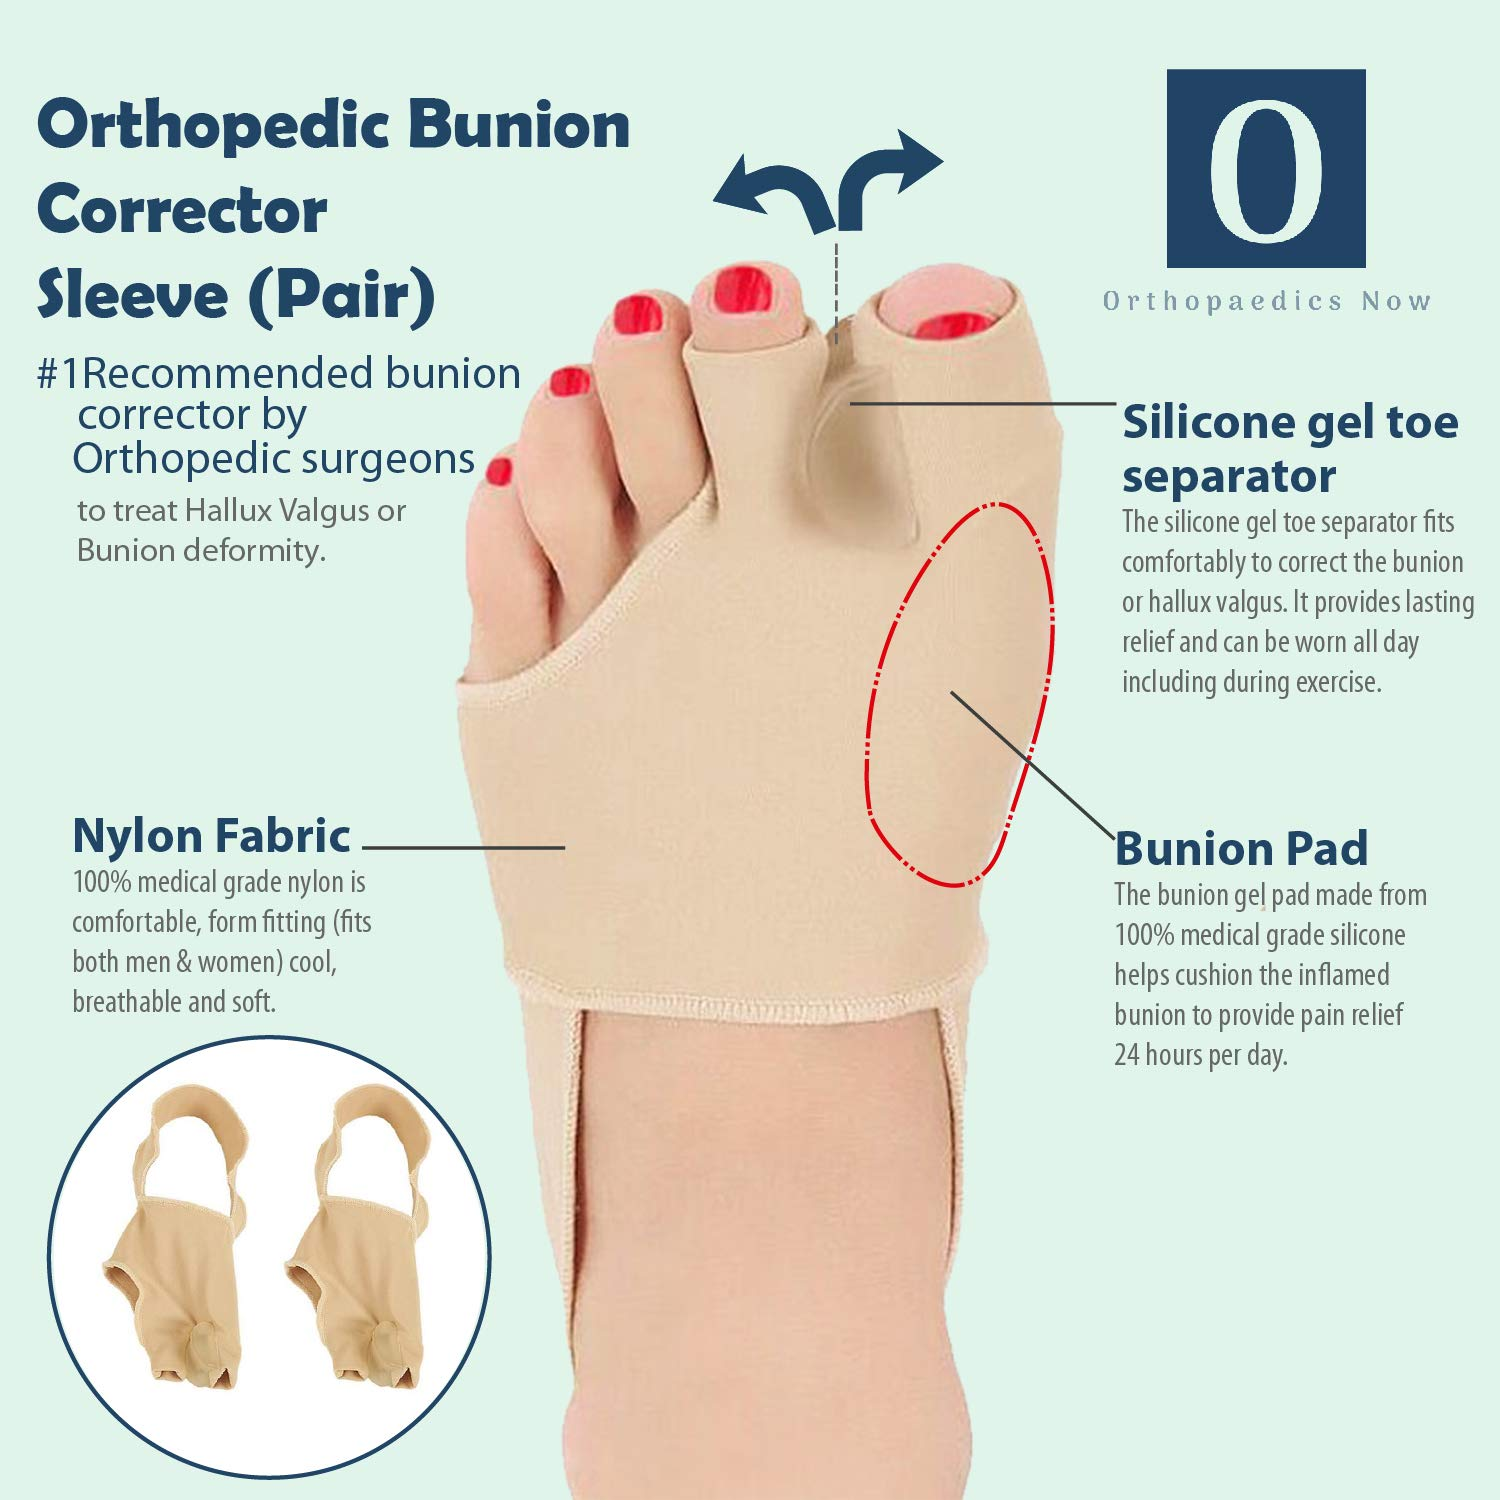 Amazon.com: Orthopedic Bunion Corrector | Bunion Corrector Sleeve | Splint for Bunion with Bunion Pads for Bunion Relief - Hallux Valgus Corrector, ...